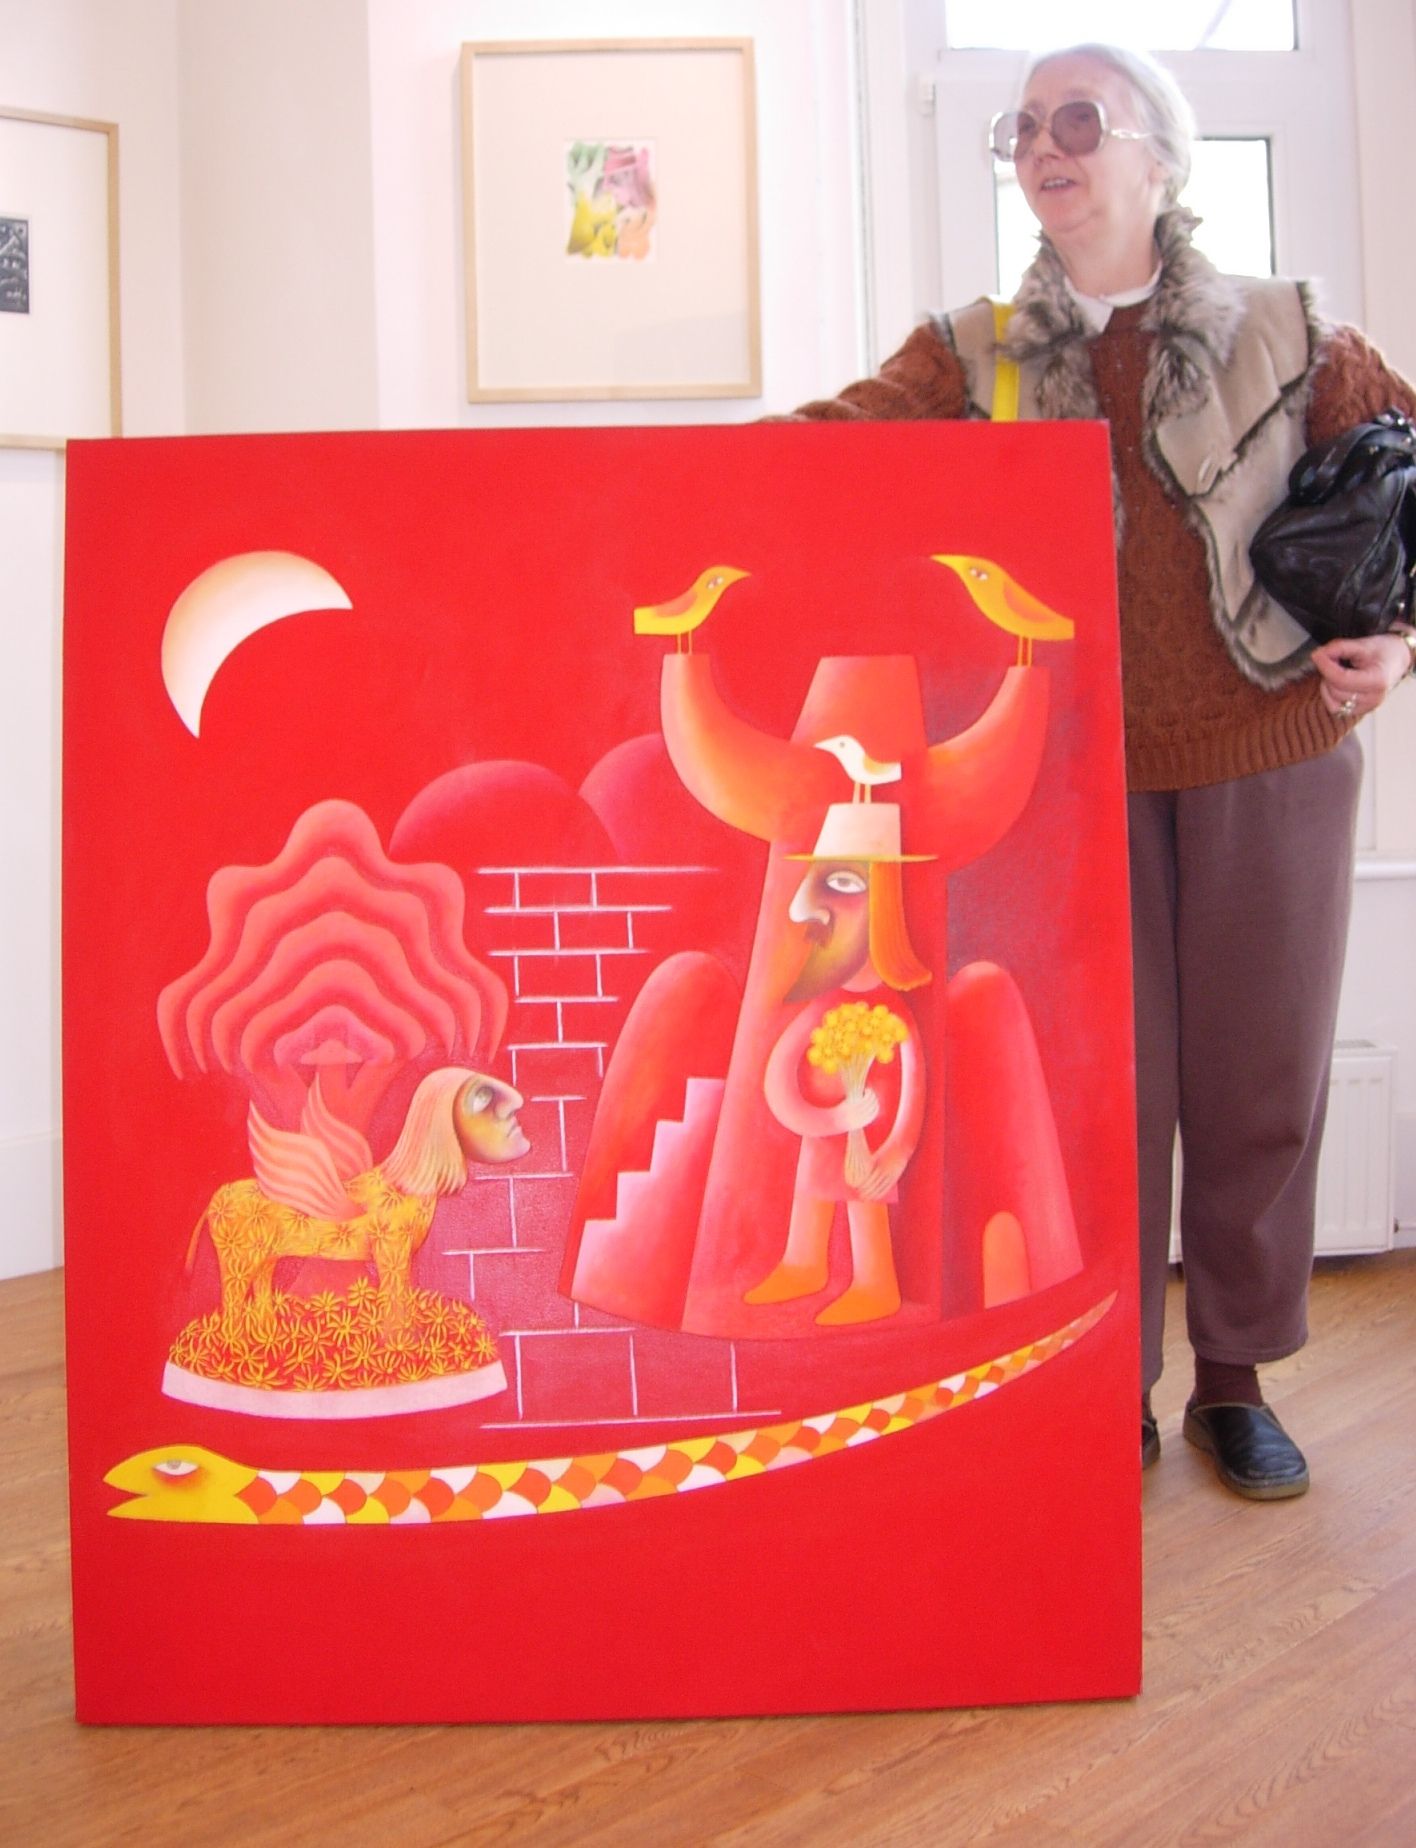 Janice Goble with a painting by Tony Goble, Kooywood Gallery, Cardiff, 19 March 2008